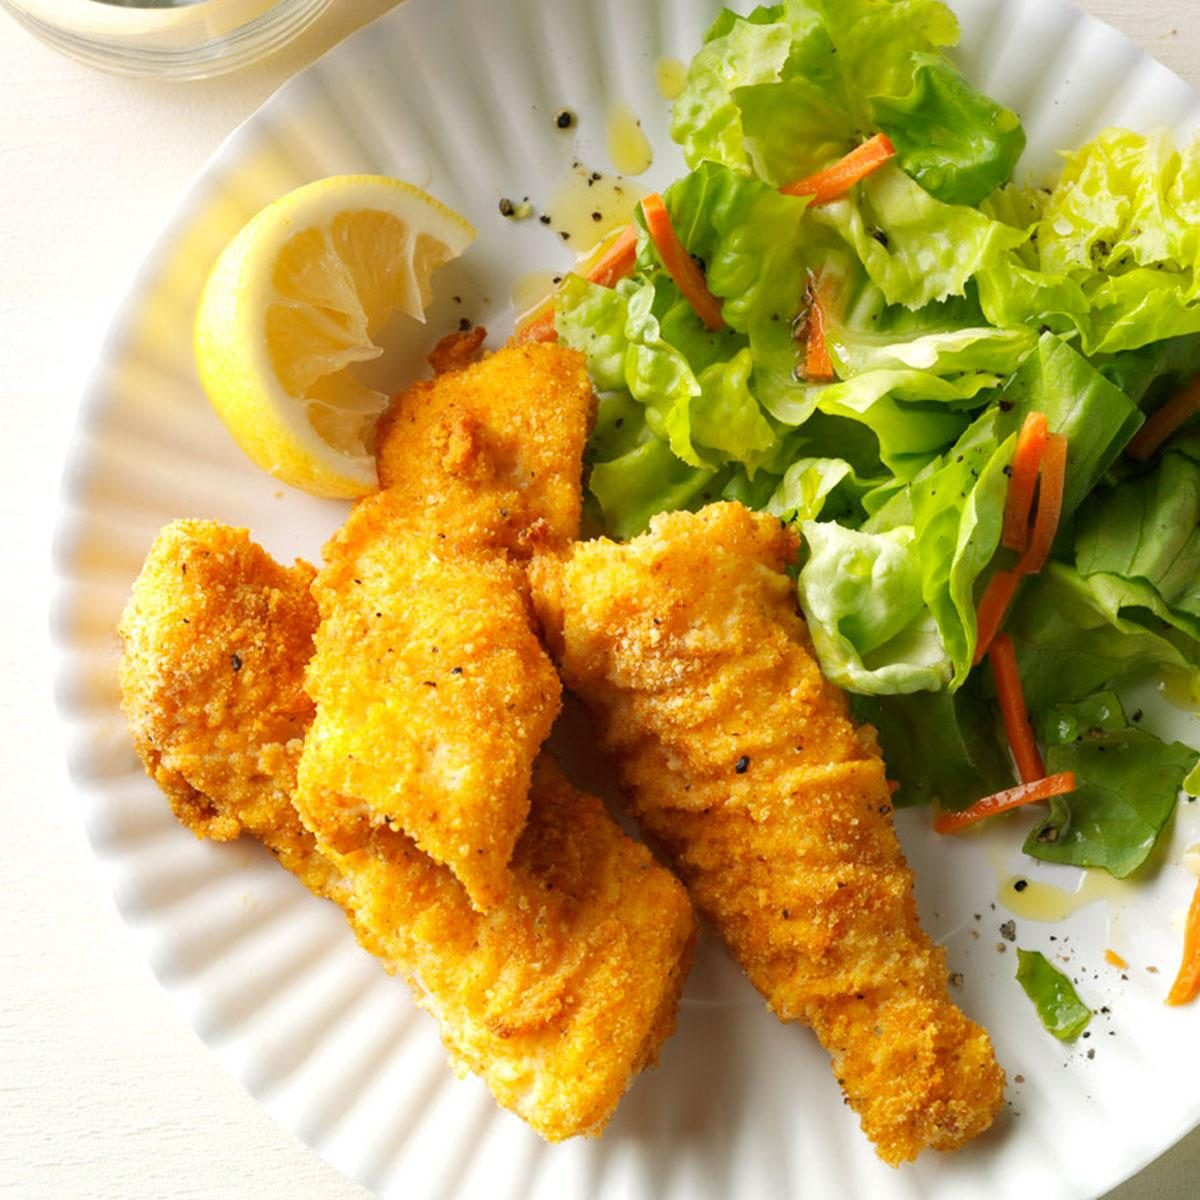 Fish sticks brands for Fried fish nutrition